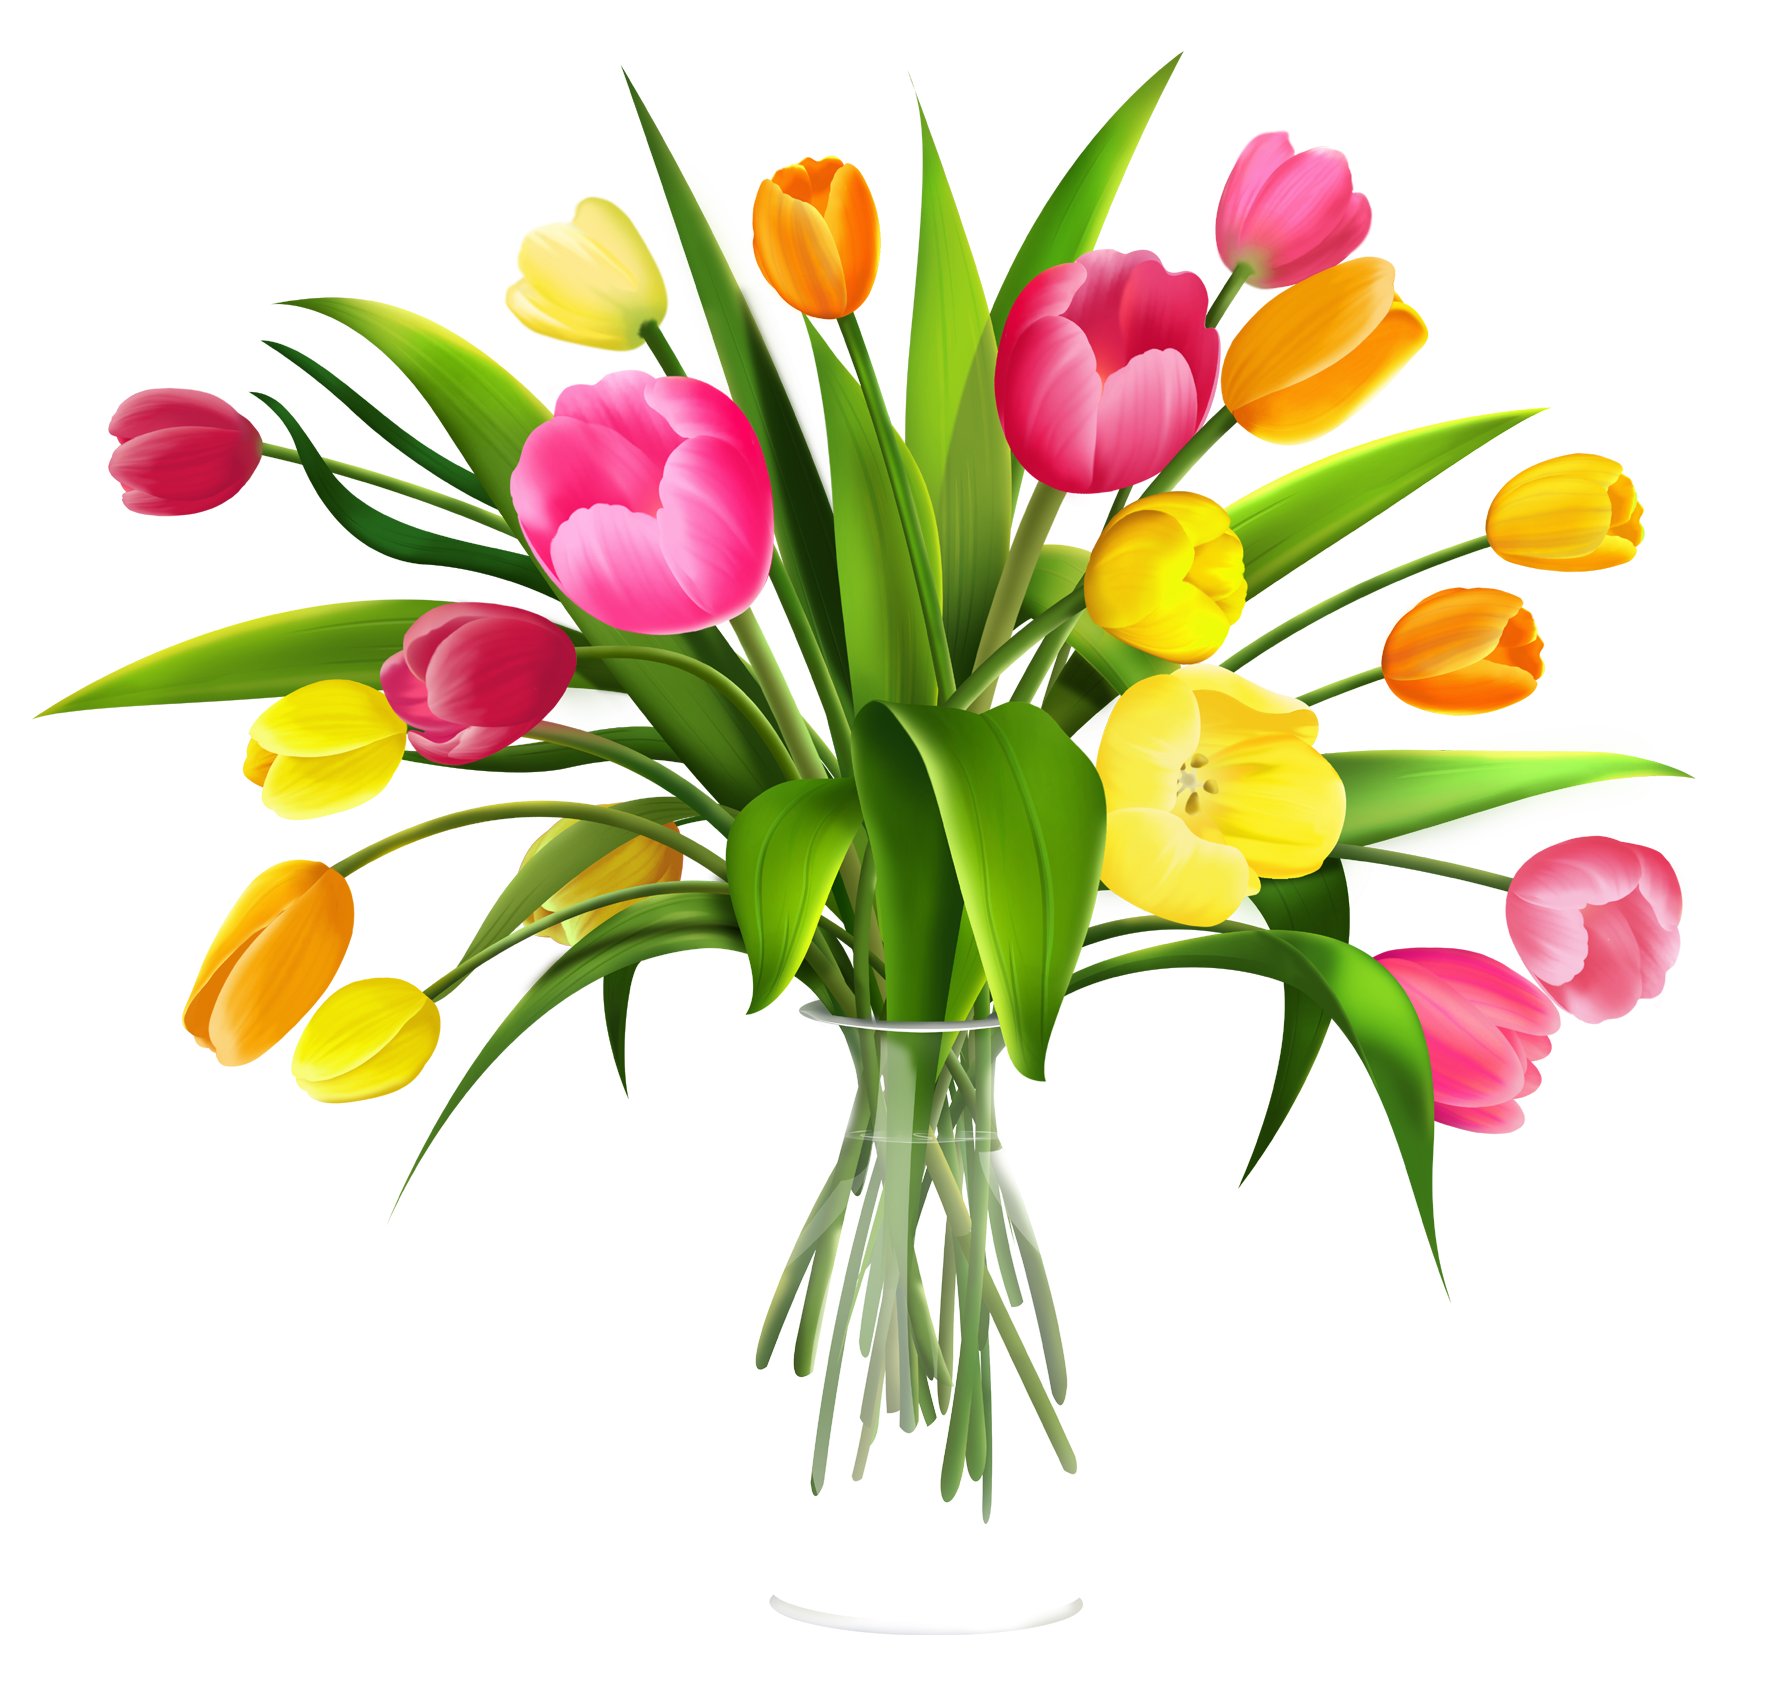 free clip art flowers in vase use these free images for your rh pinterest com free flower clipart downloads free flower clipart downloads